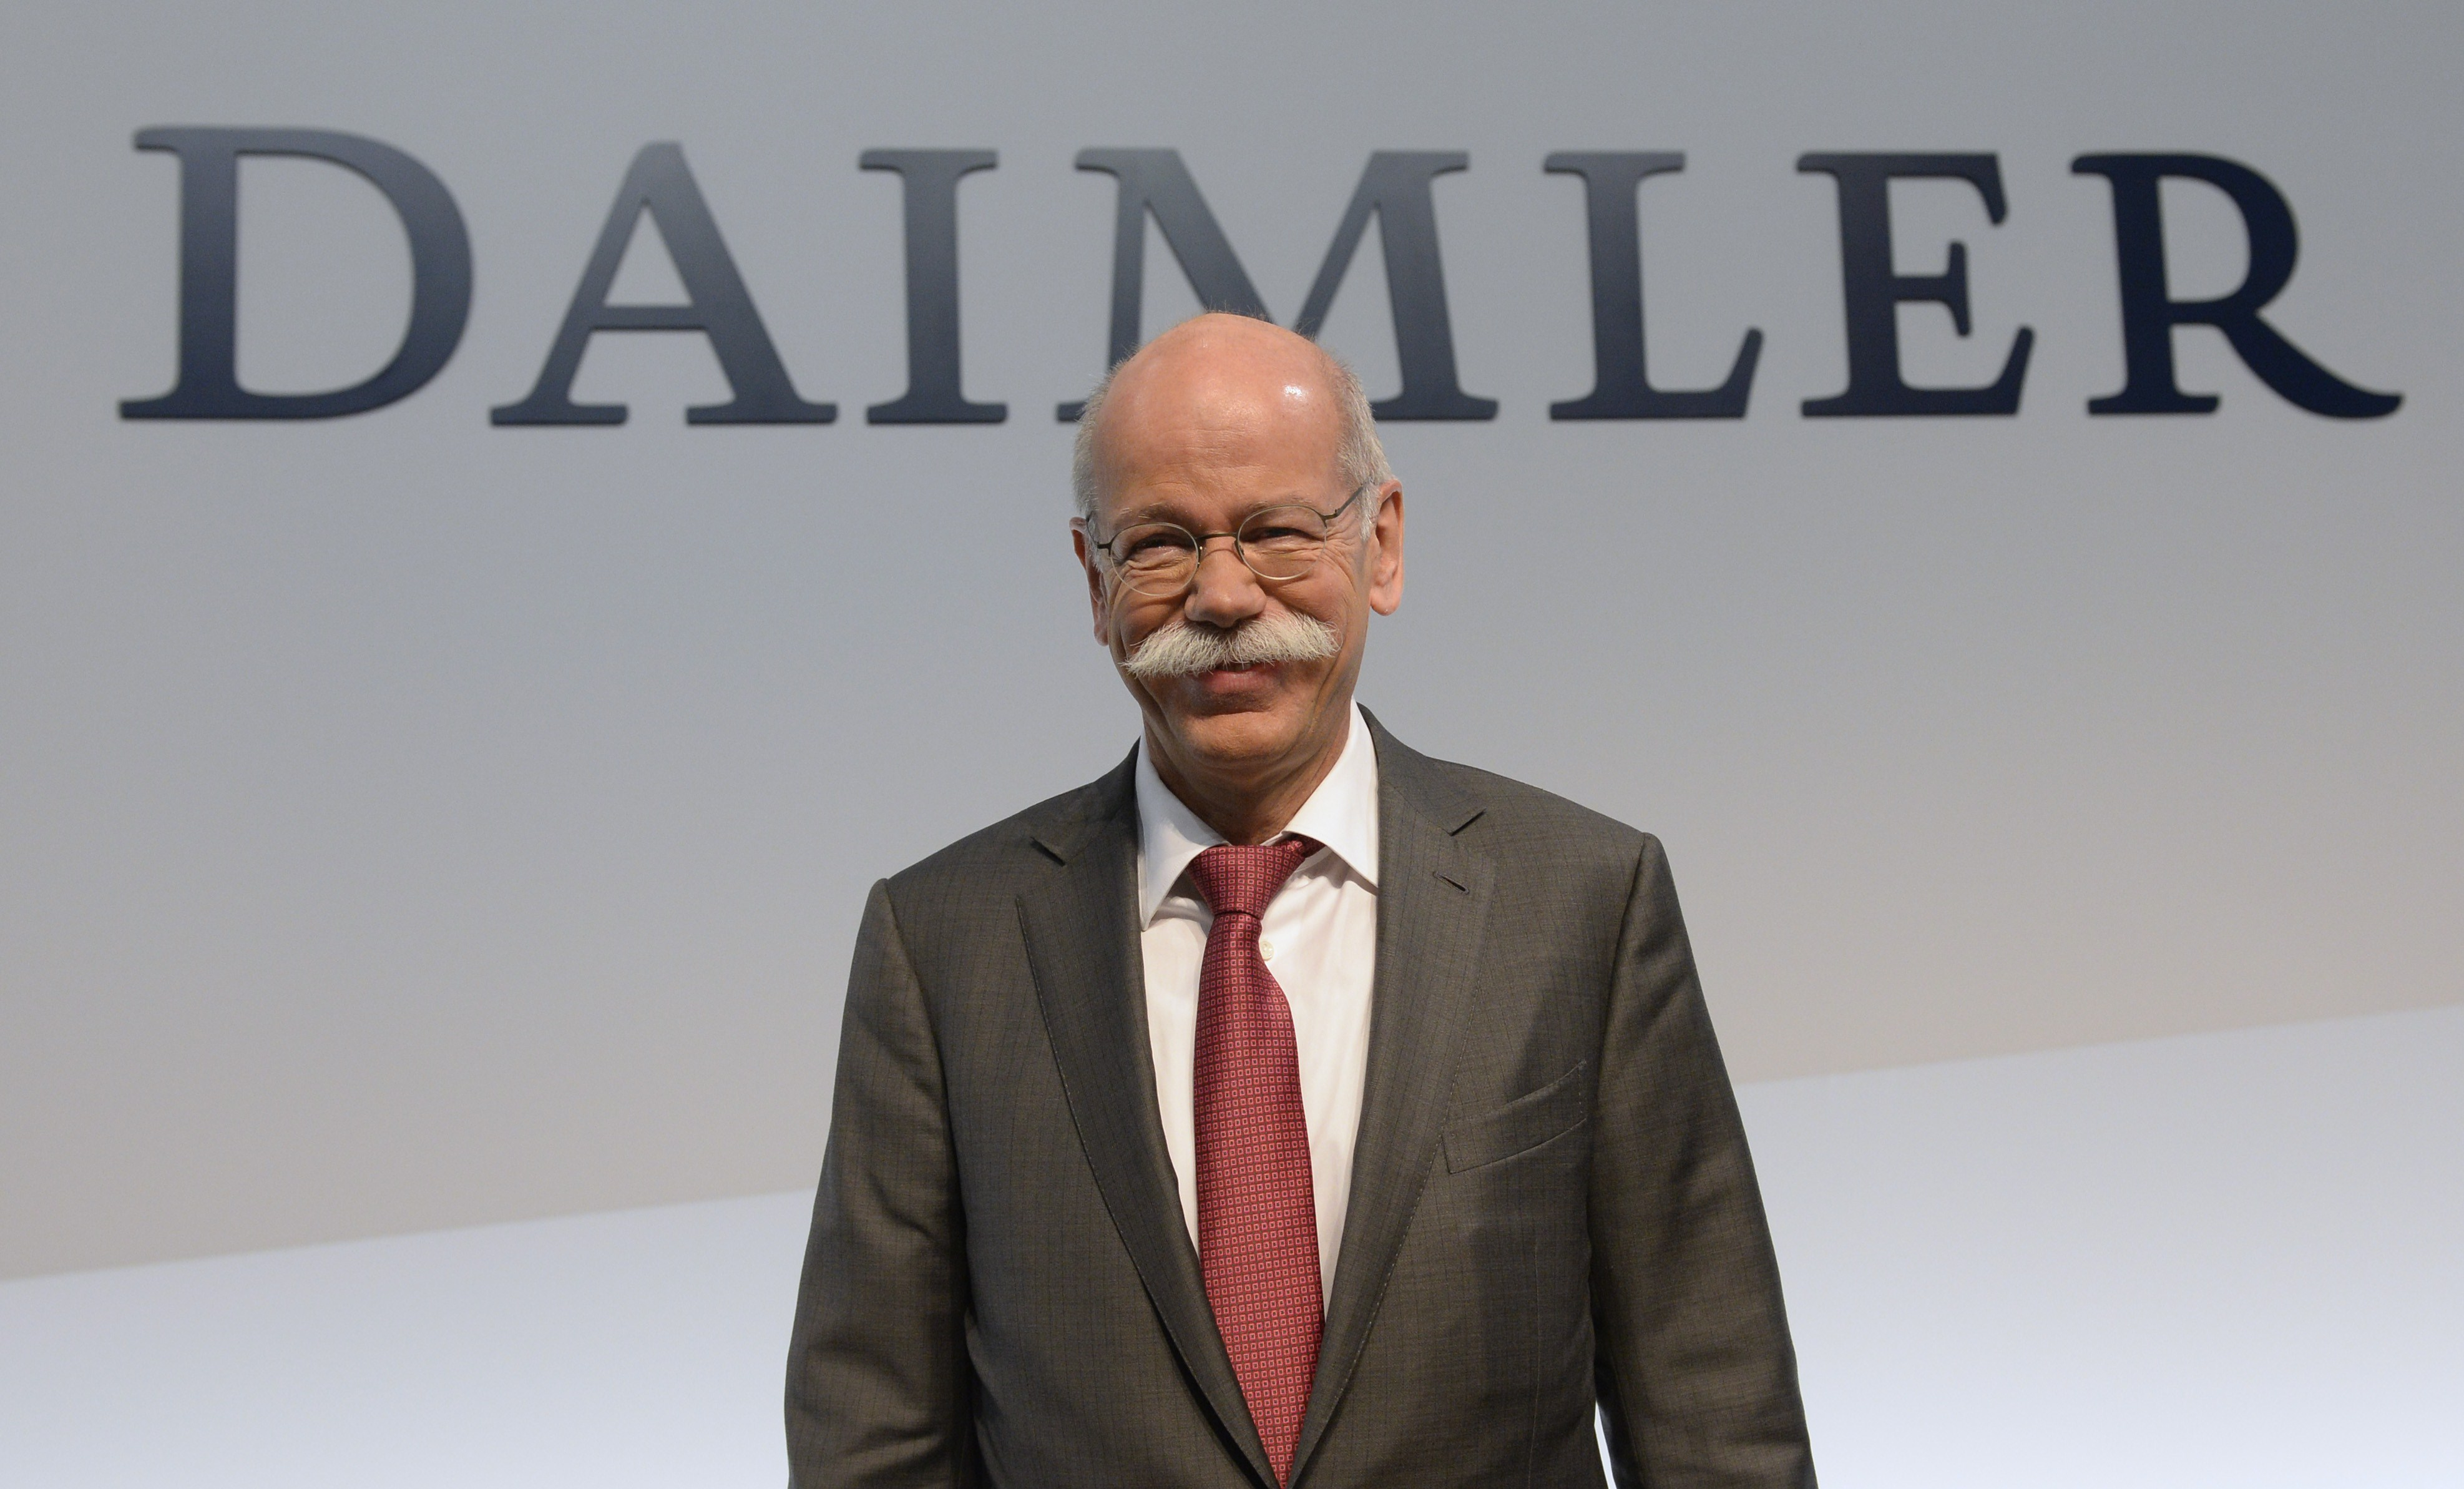 GERMANY-AUTO-RESULTS-DAIMLER